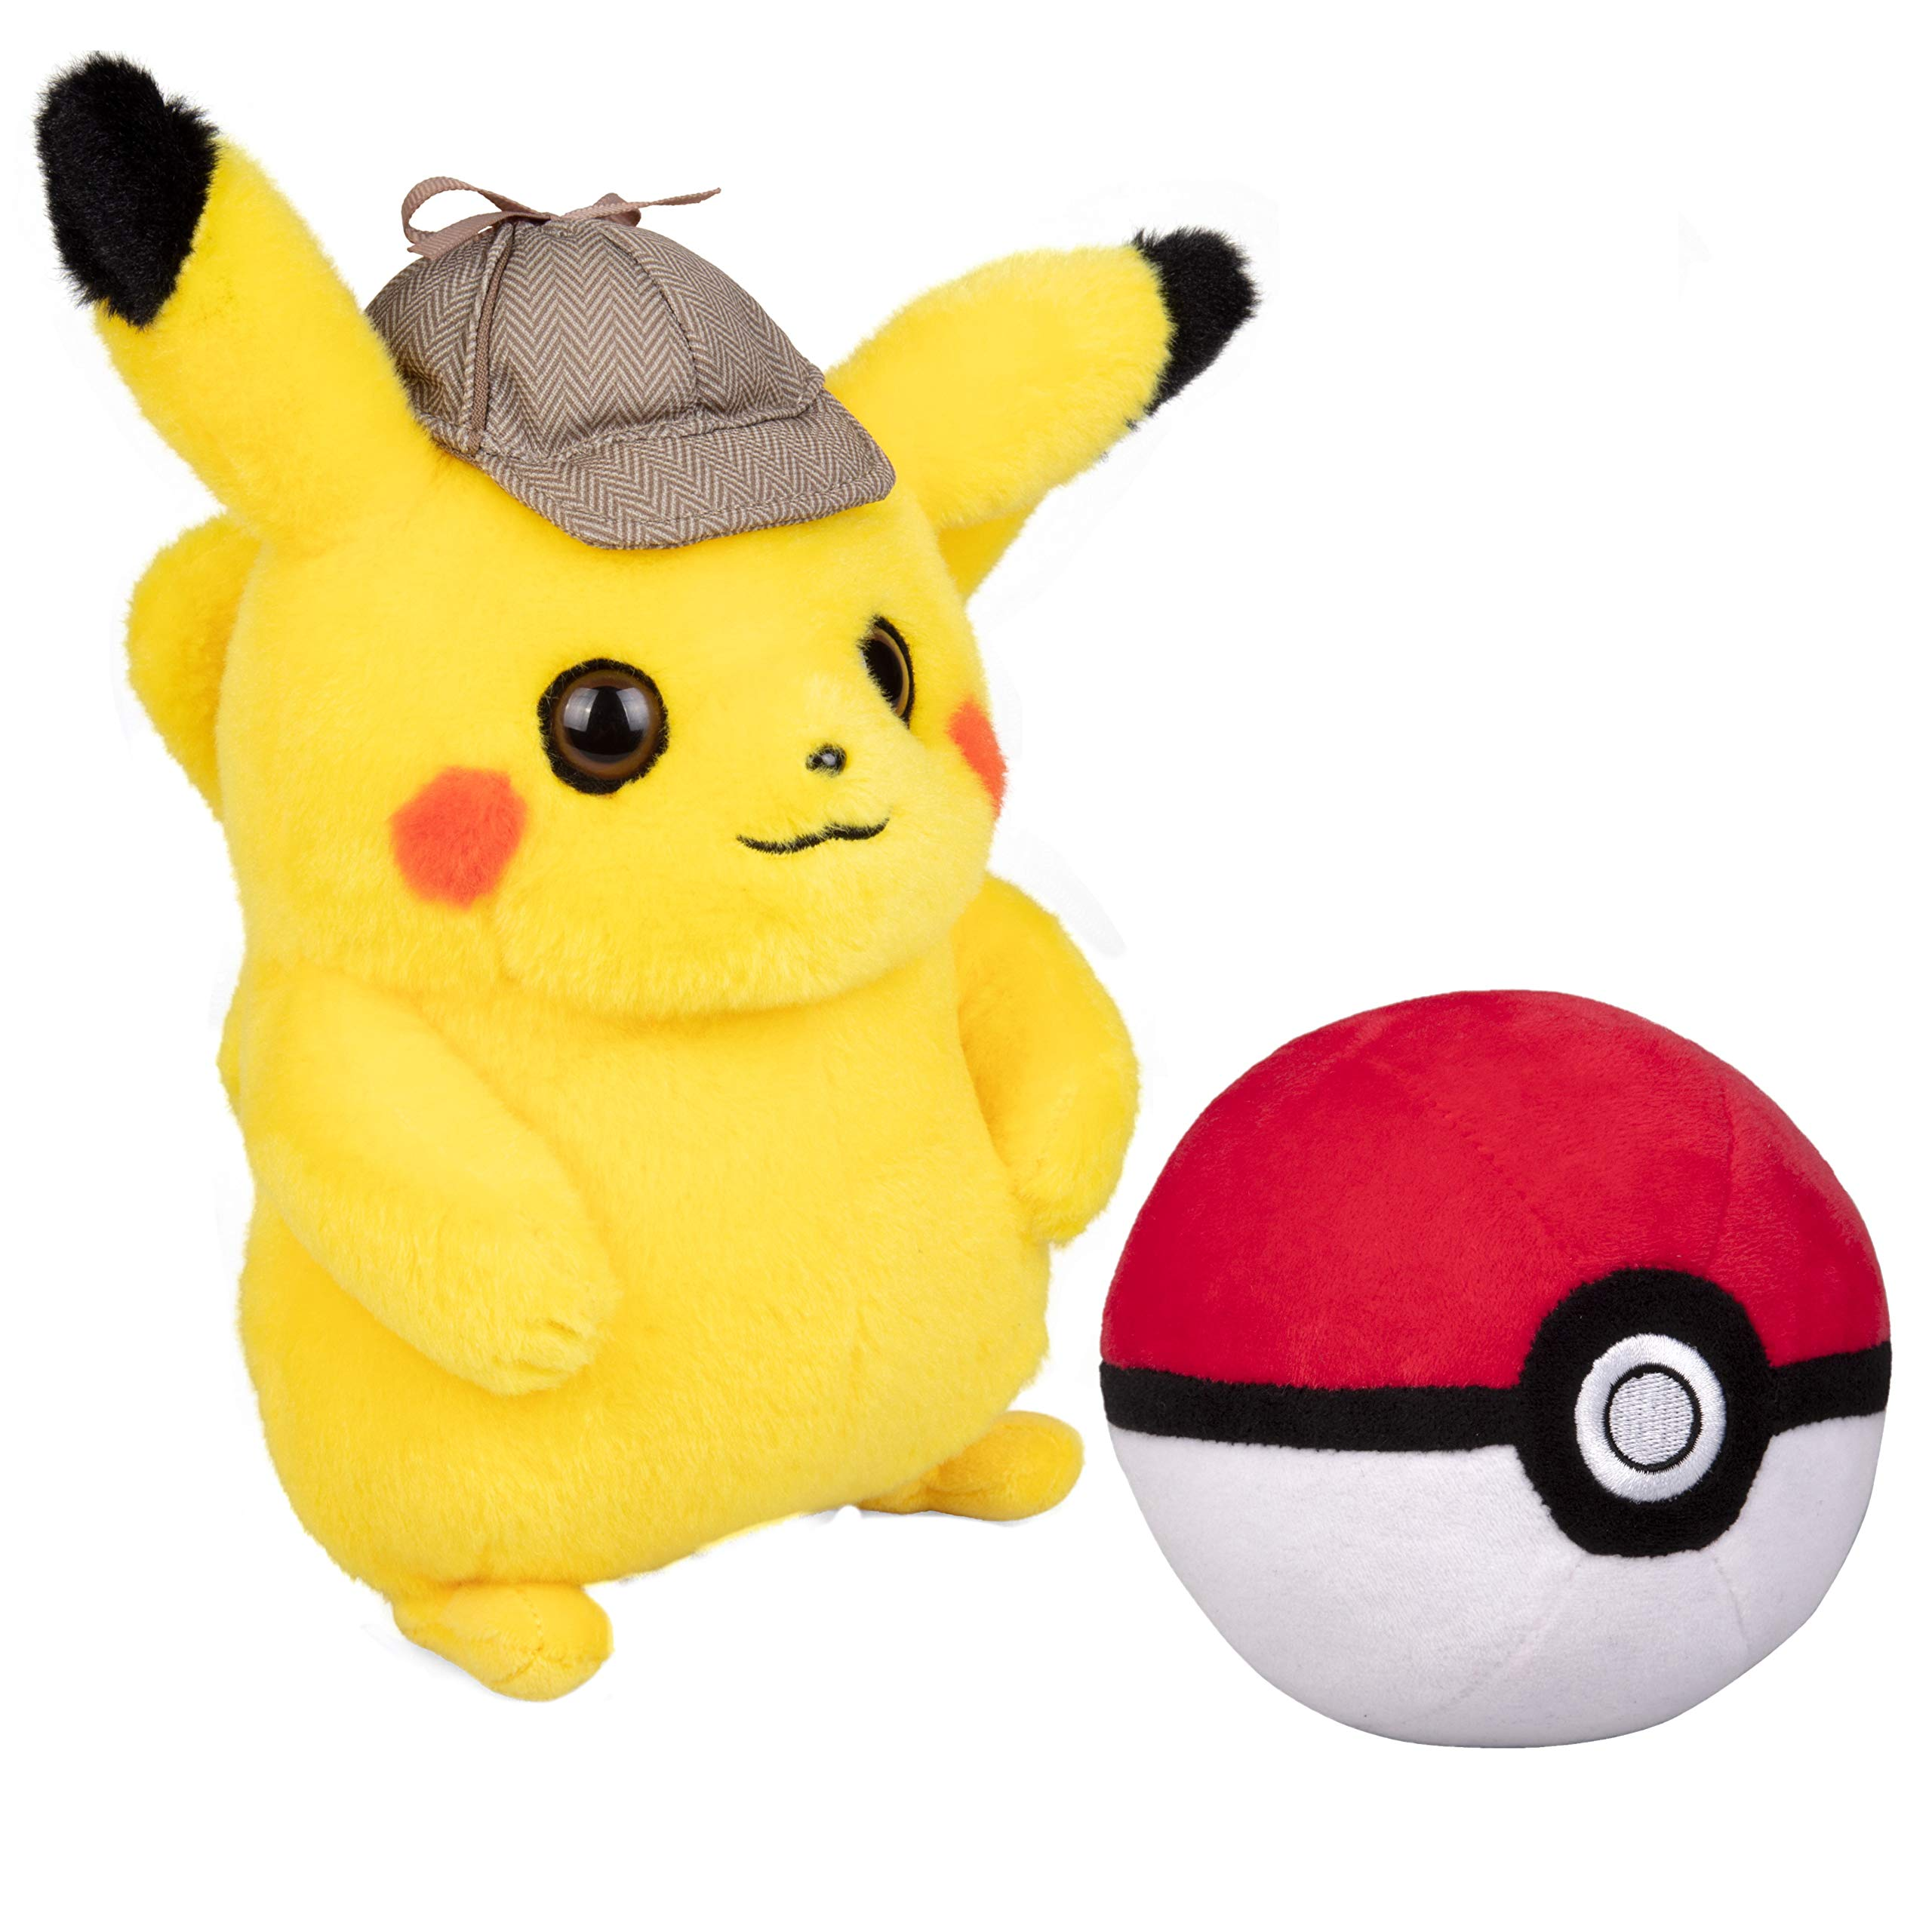 Wicked Cool Toys Pokemon Detective Pikachu 8 Inch Plush with Soft Pokeball - 2 Pack by Wicked Cool Toys